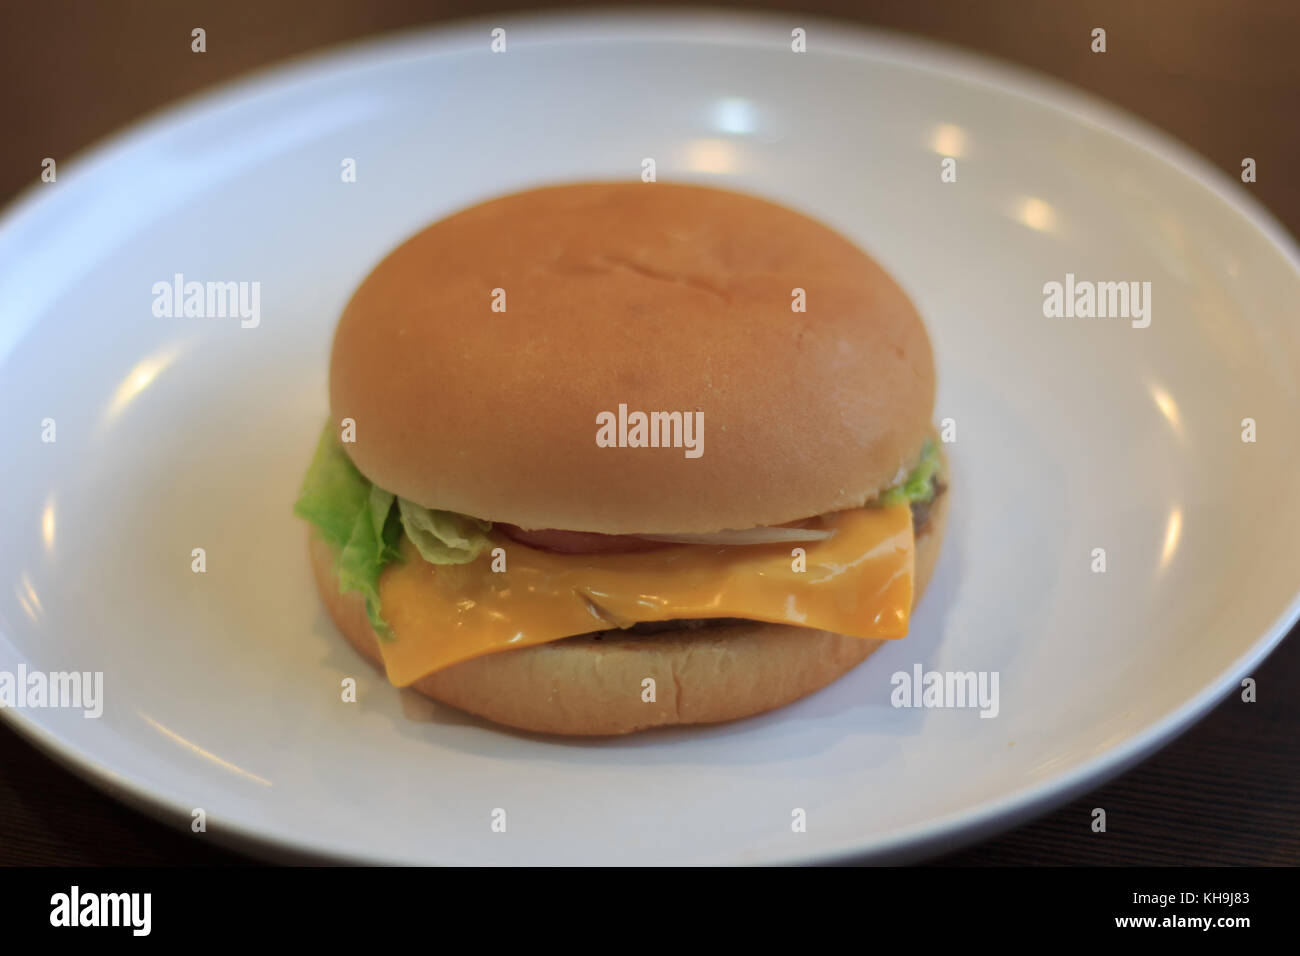 Close-up burger, burger select focus on a white plate lowl ight or underexposed, burger breakfast - Stock Image